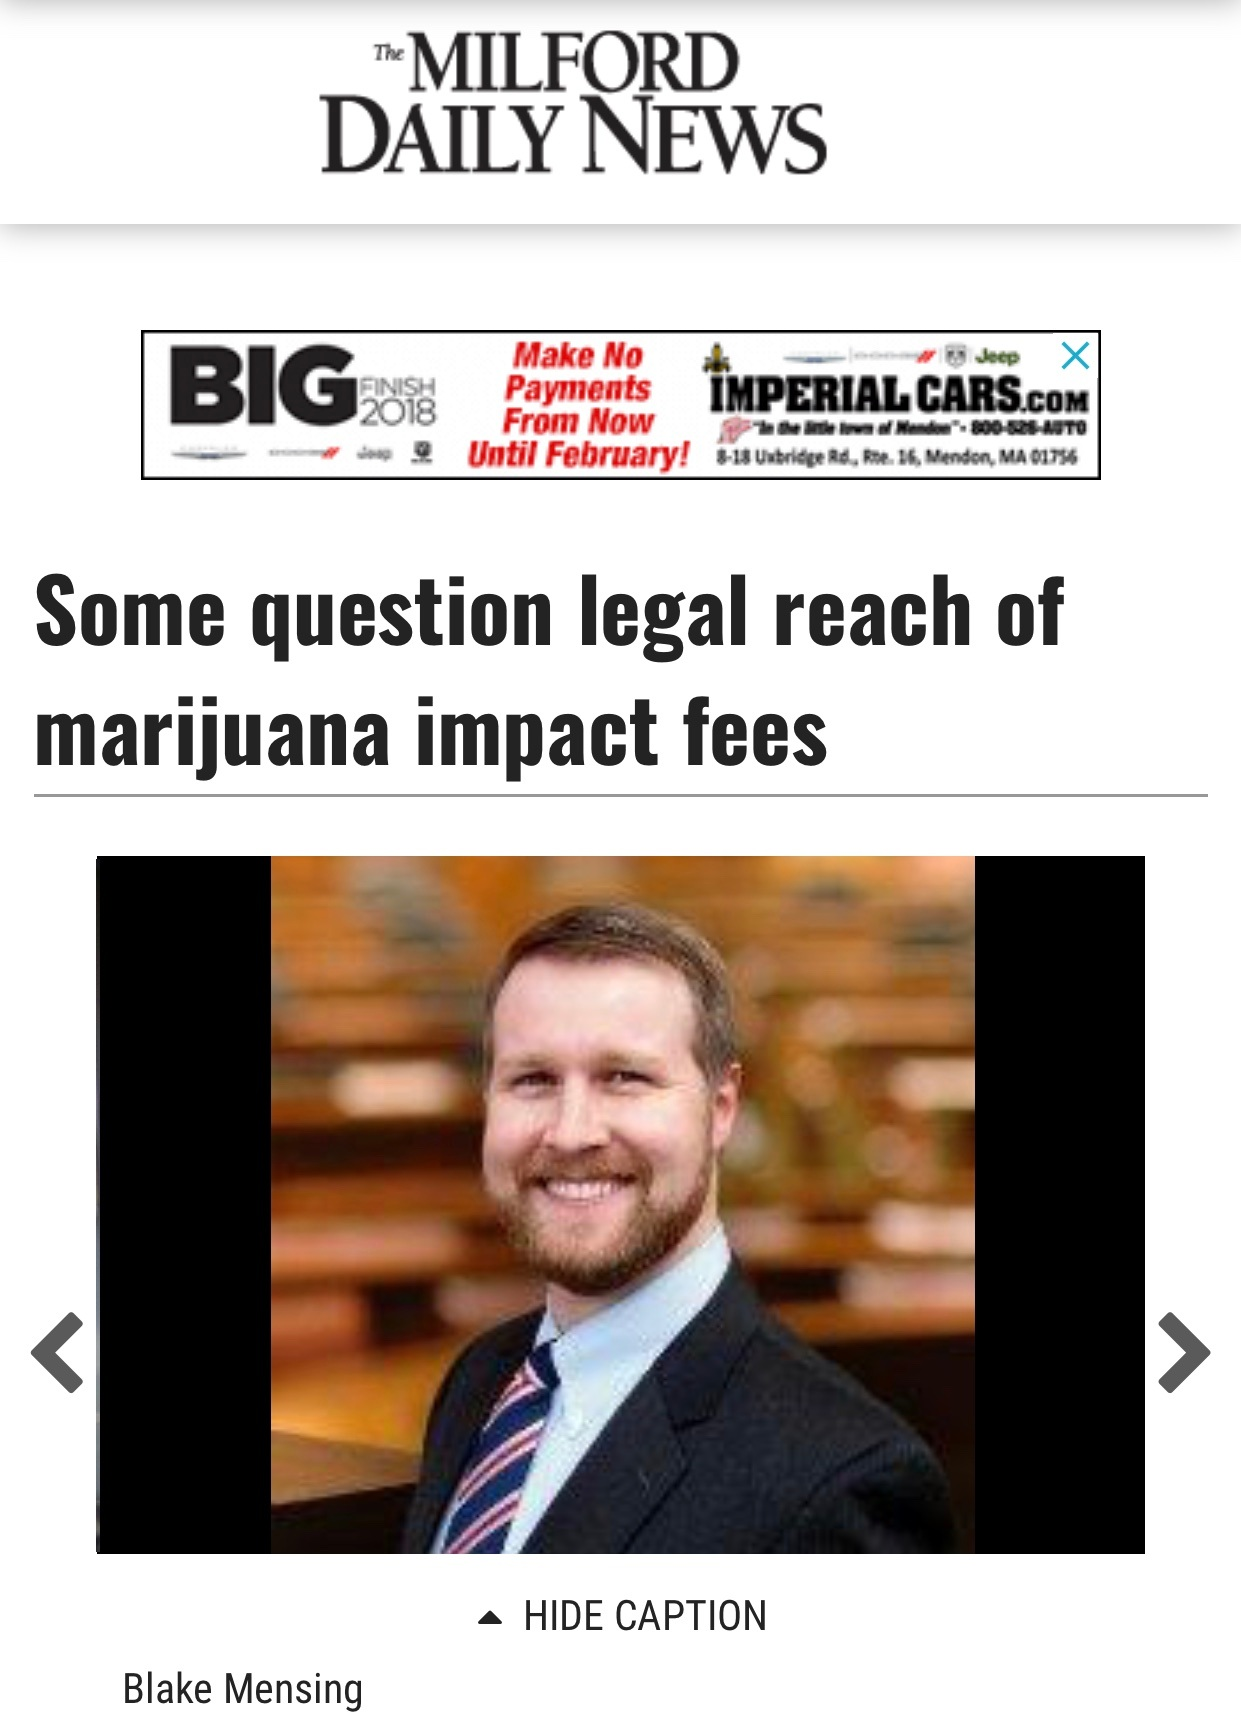 """https://www.milforddailynews.com/news/20181222/some-question-legal-reach-of-marijuana-impact-fees   """"If you find someone who is willing to pay $100,000 off the top – essentially to grease the wheels – that's going to limit who can start up,"""" Mensing said. """"I think the people with the most money are making the most progress, and I don't think that's what the statutes intended. I don't think that's what the voters intended."""""""